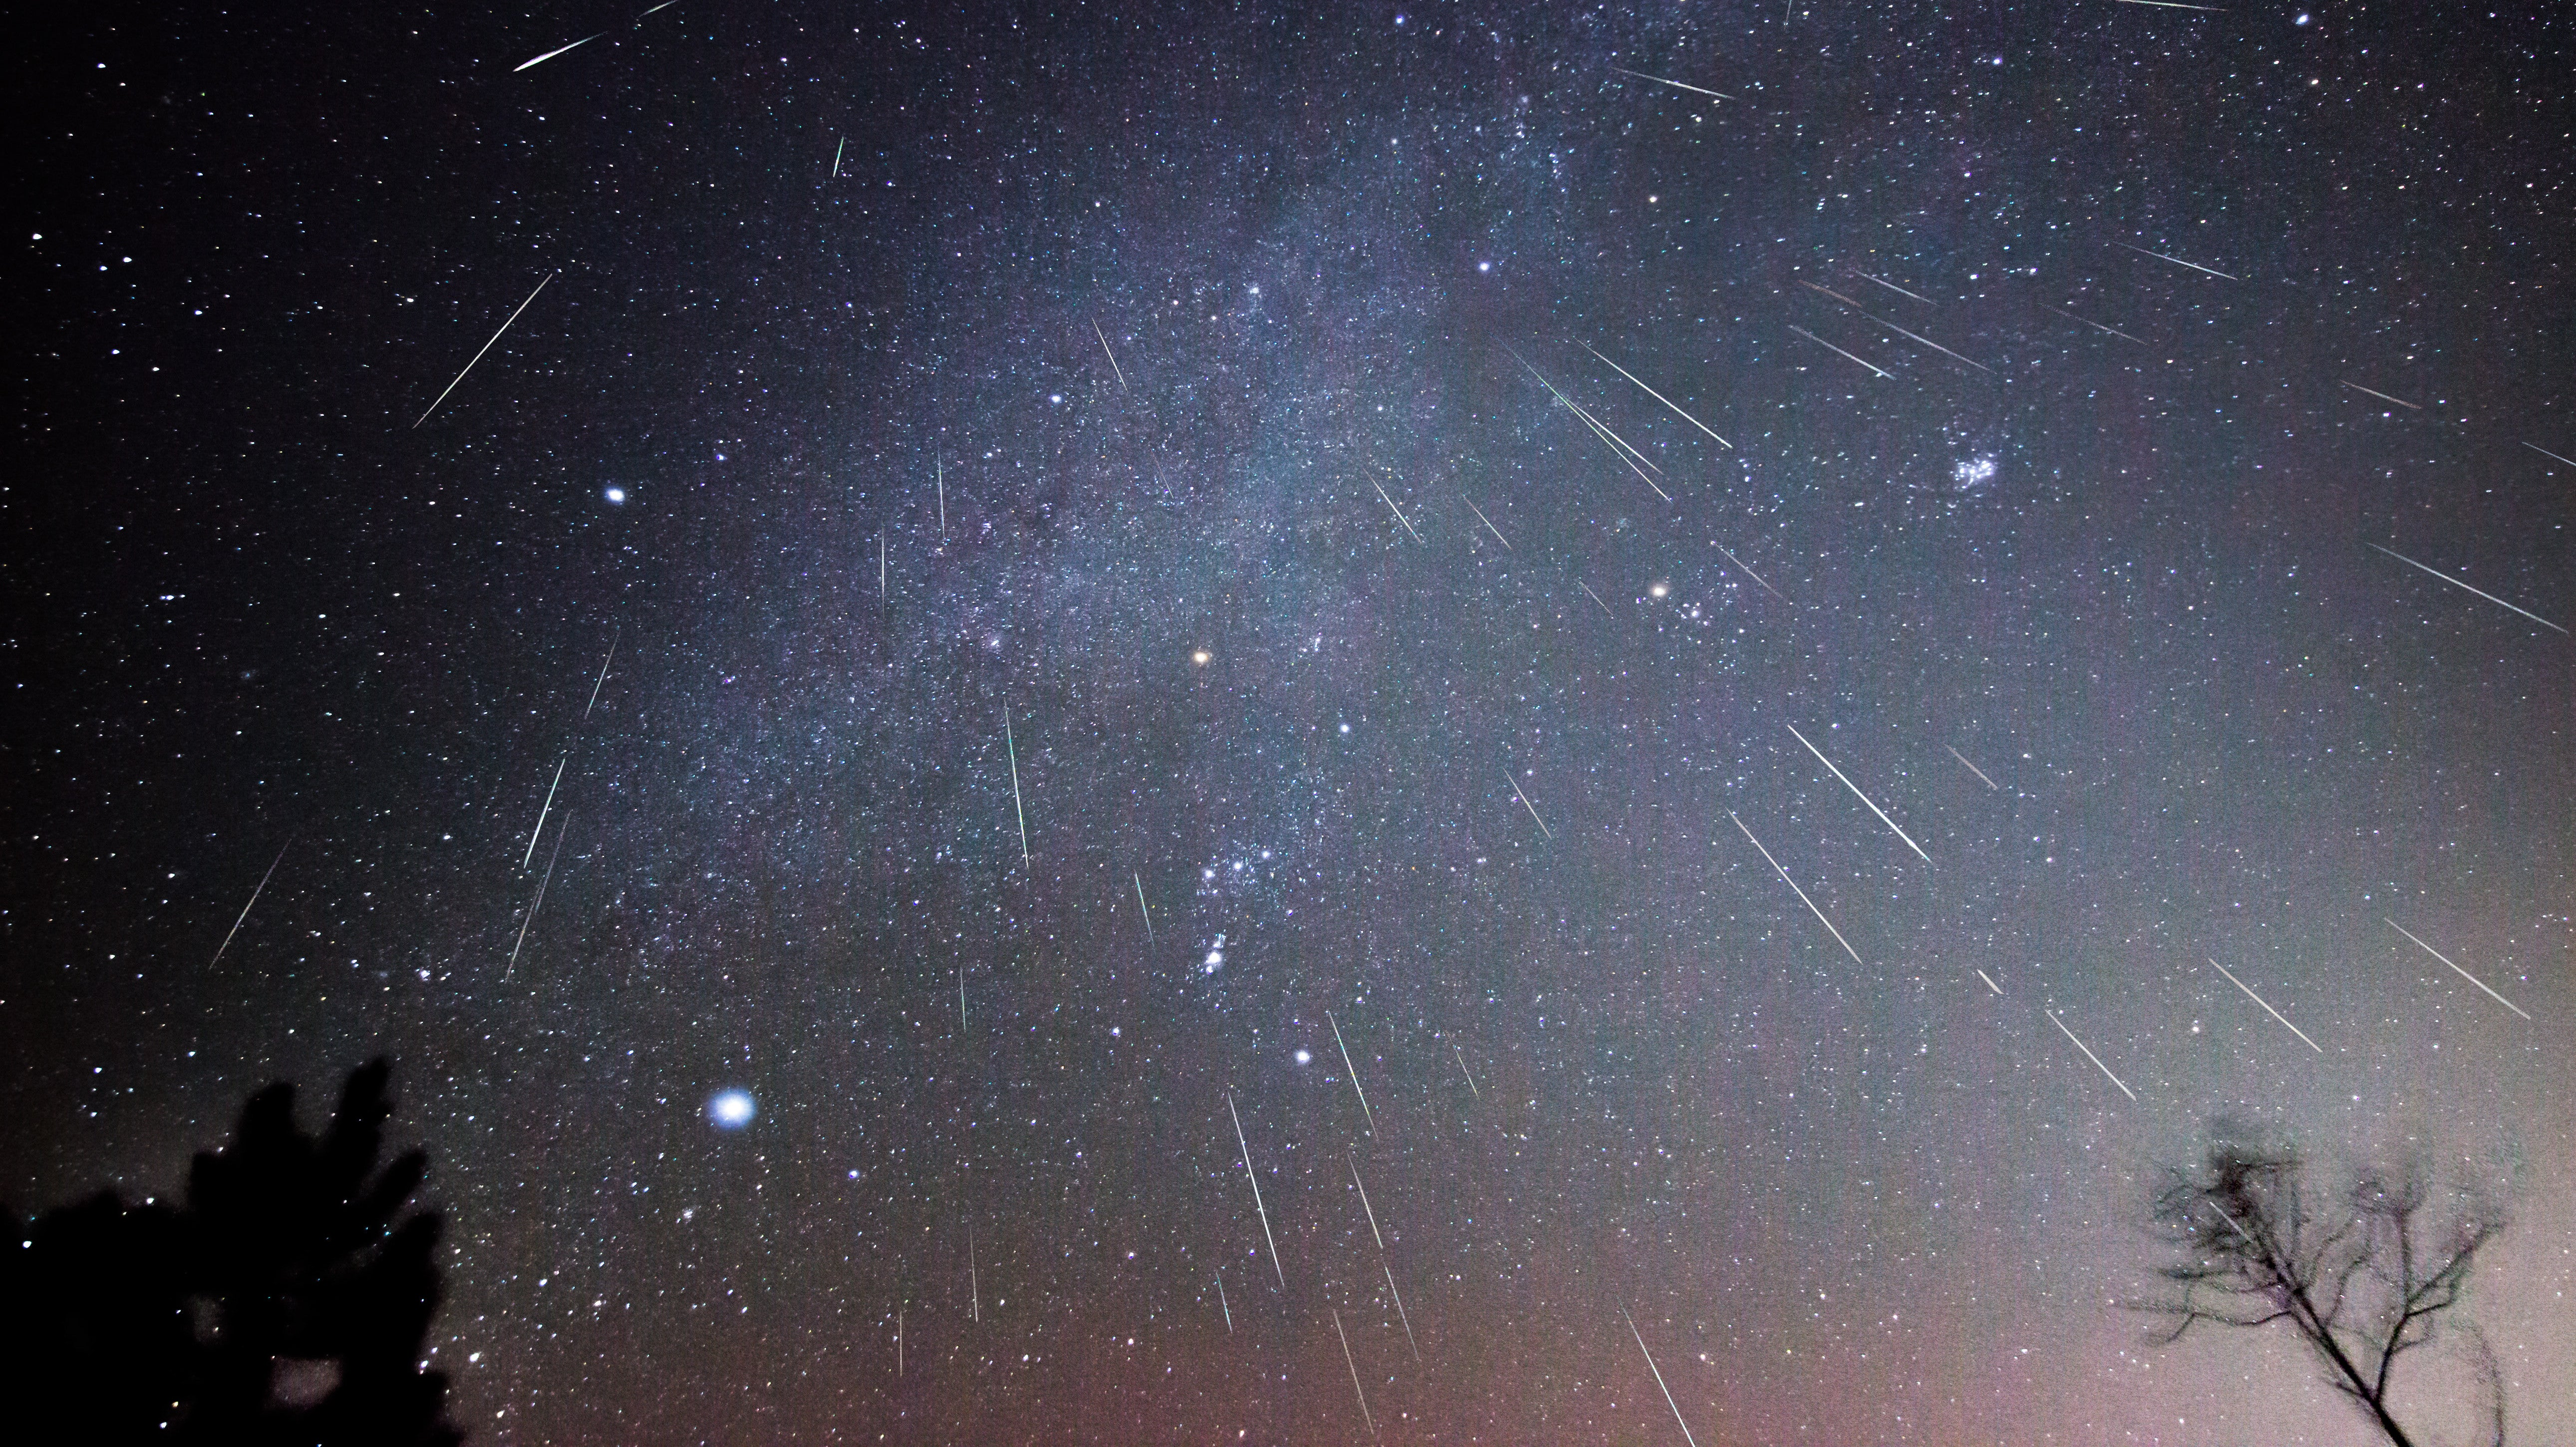 How To Watch The Taurid Meteor Shower Tonight